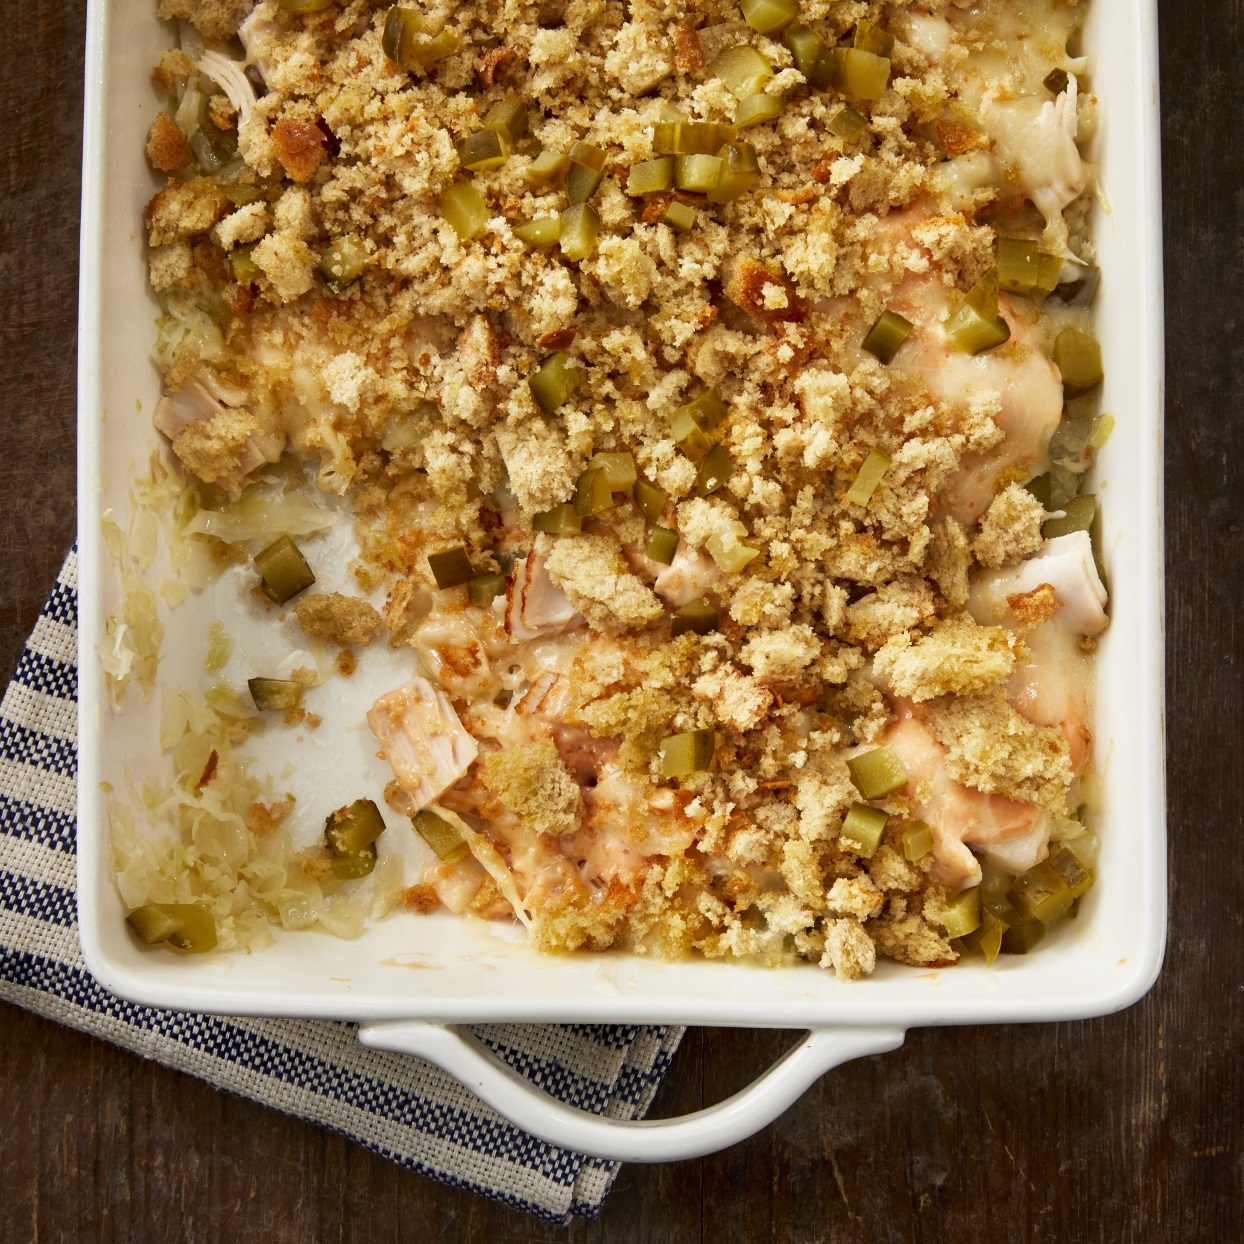 This Reuben casserole recipe has all the delicious elements of a Reuben sandwich with much less sodium and calories. Thinly sliced angel hair cabbage cooked with a splash of vinegar stands in for the sauerkraut, and lower-sodium deli turkey adds a rich, meaty flavor in place of the traditional corned beef. Source: EatingWell.com, December 2019